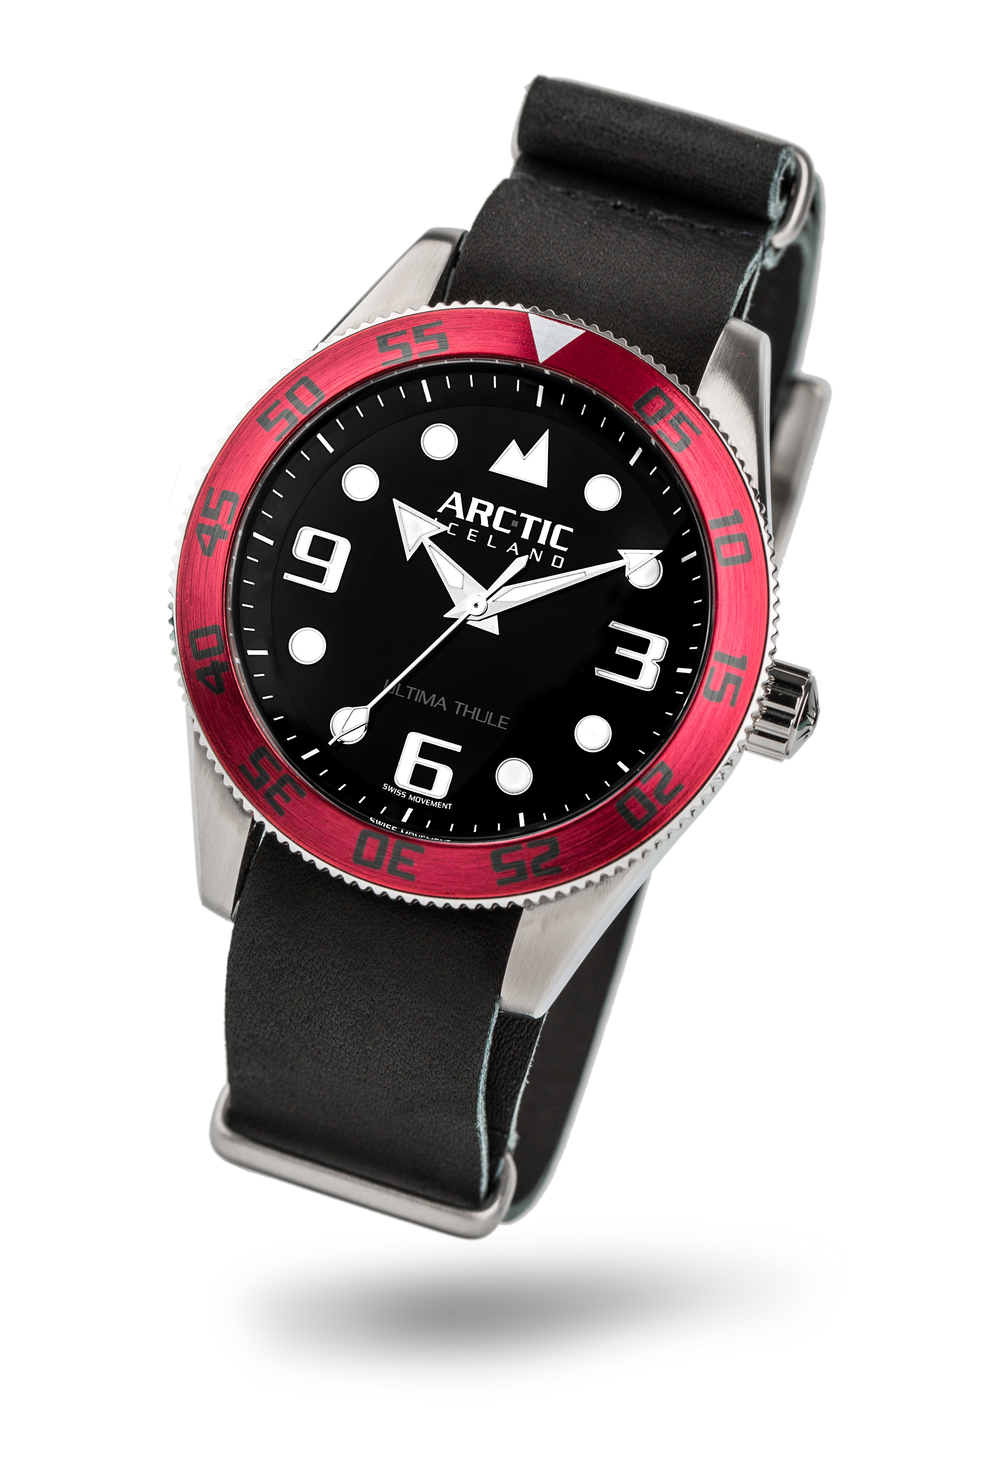 ARC-TIC Iceland UT Red with leather strap  Learn More